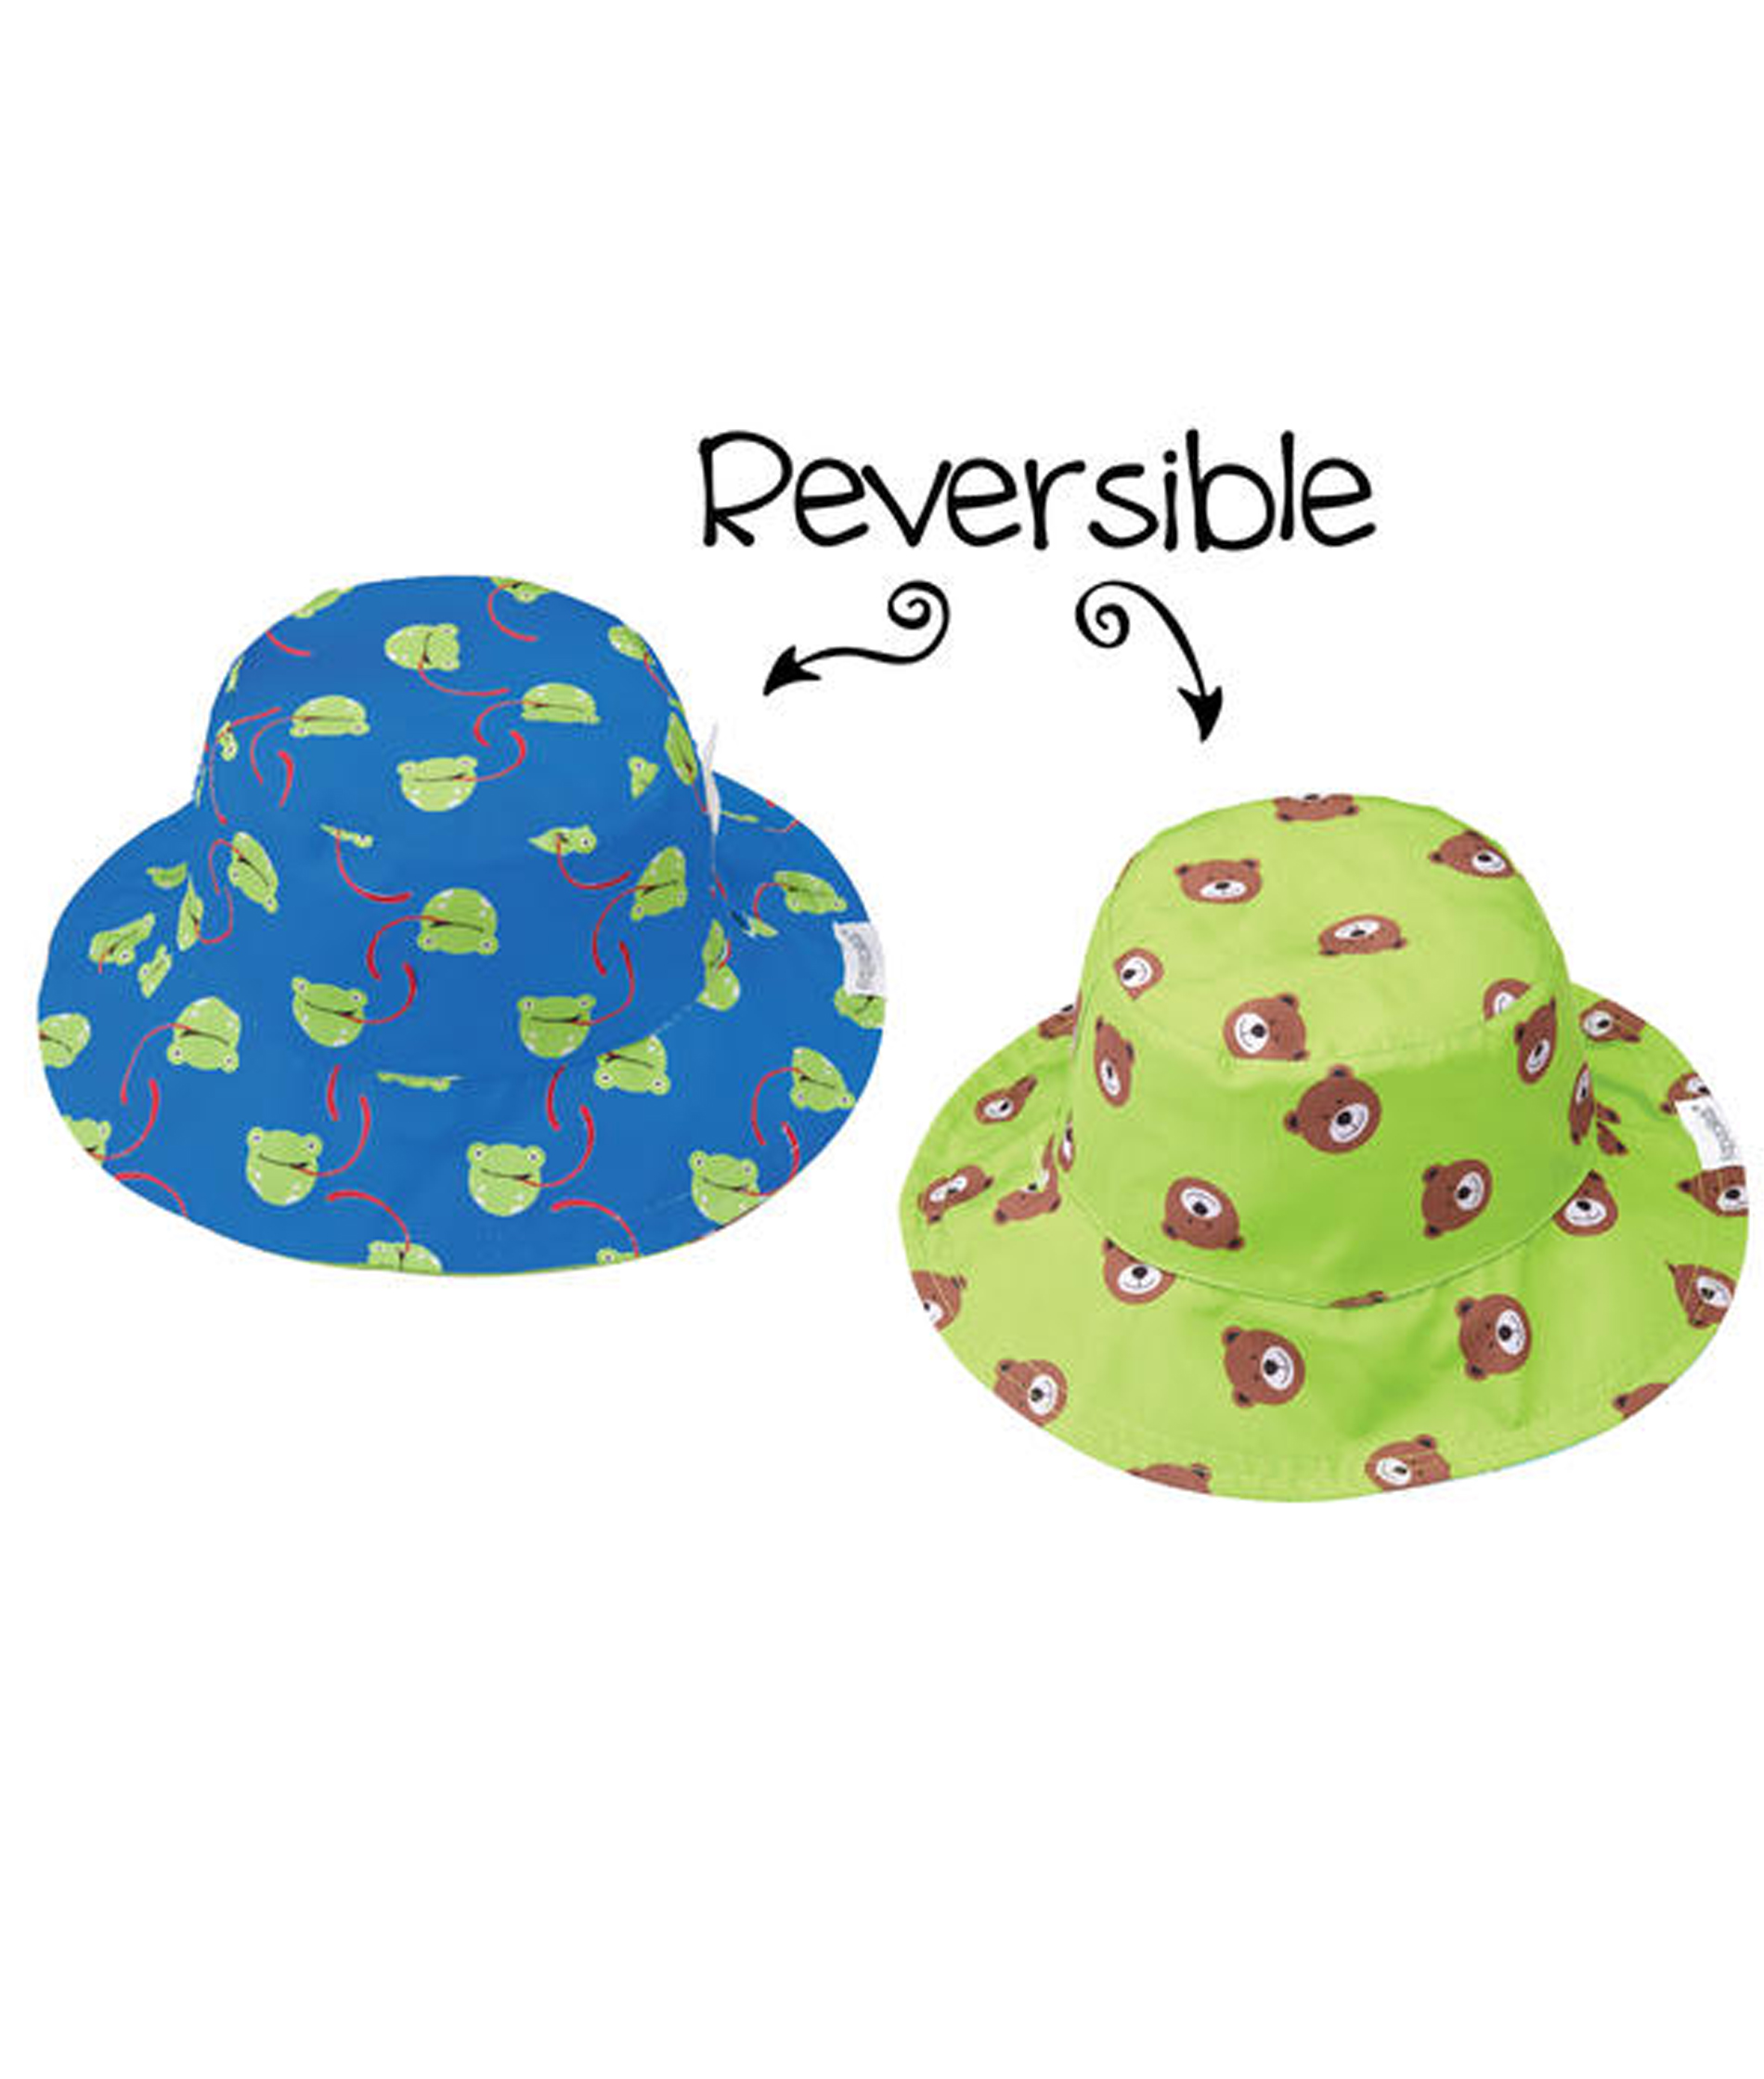 Flapjack Kids Baby Reversible Patterned Sun Hats - Frog/Bear